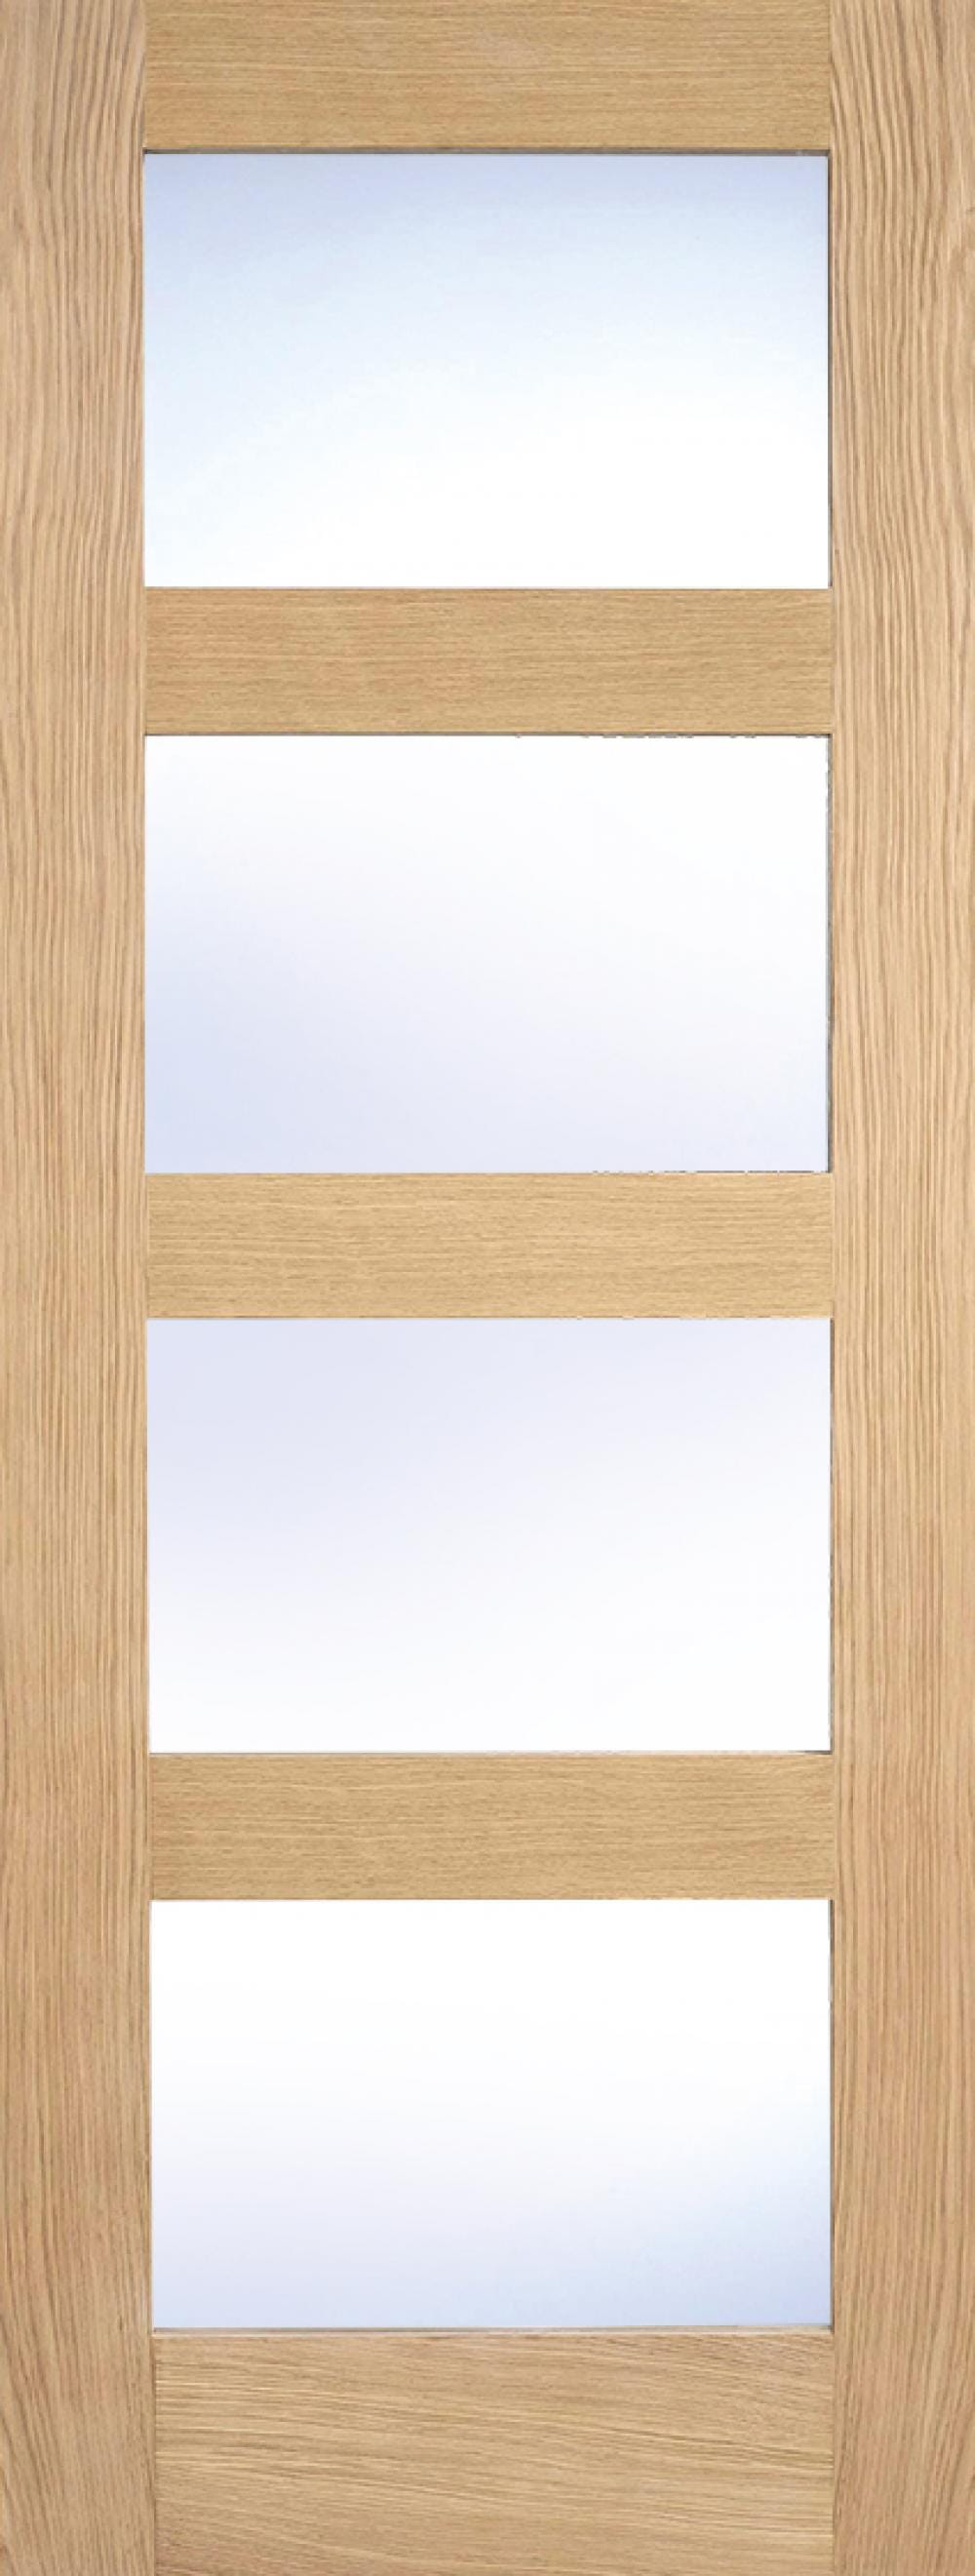 Glazed Oak 4 Light Fire Door - Clear Glass Image